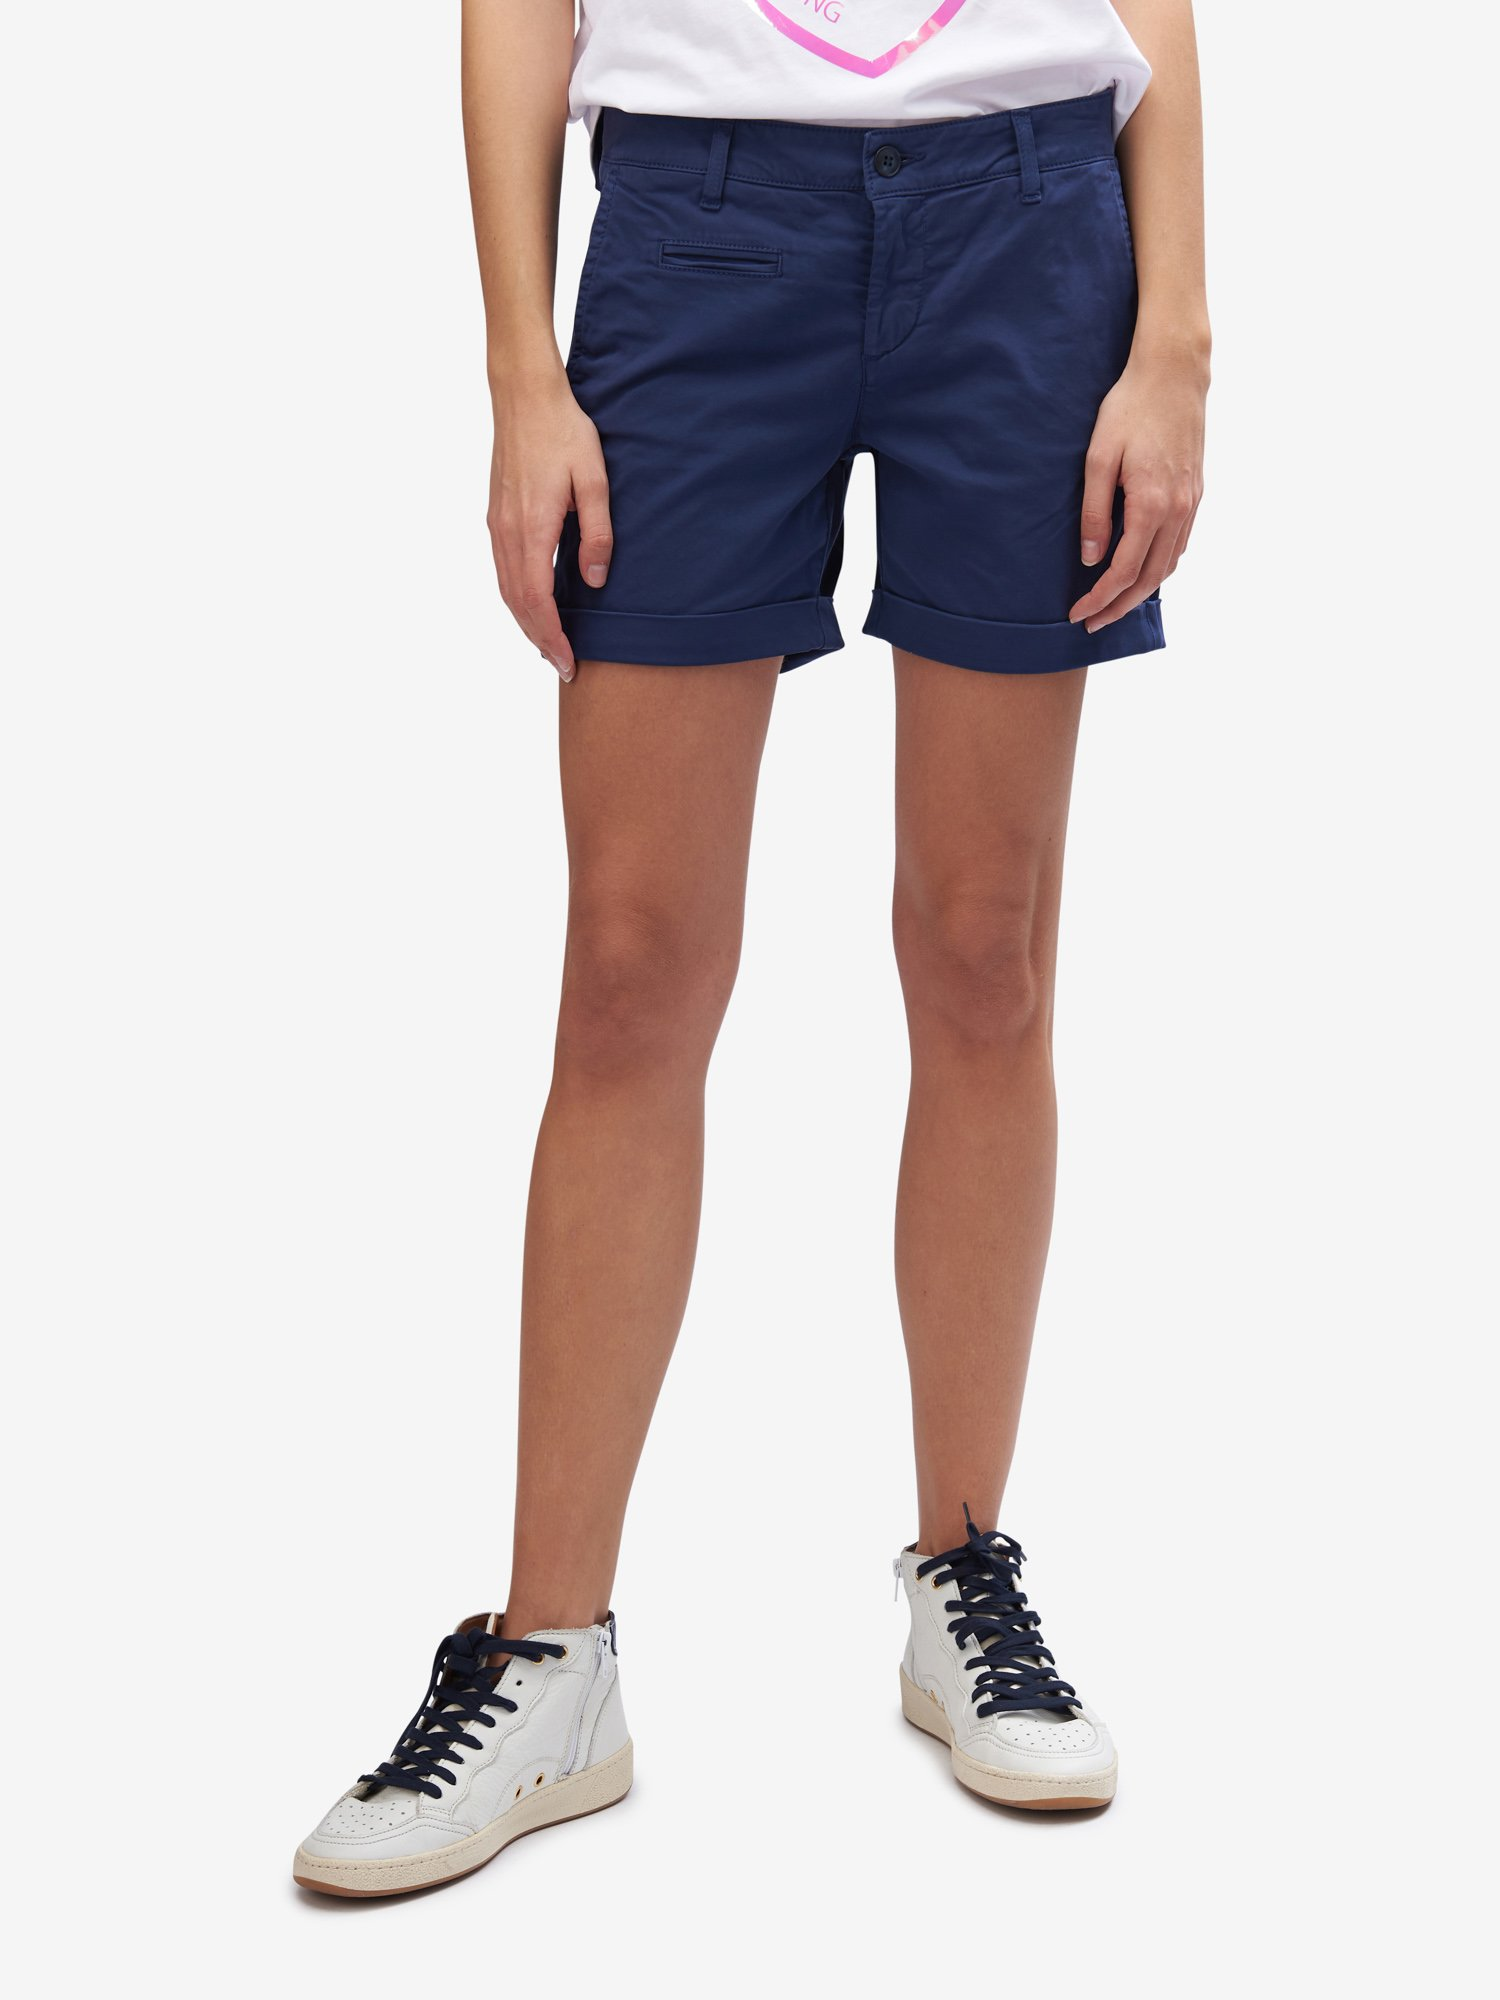 Blauer - COTTON-BLEND SHORTS - Blue Sapphire - Blauer